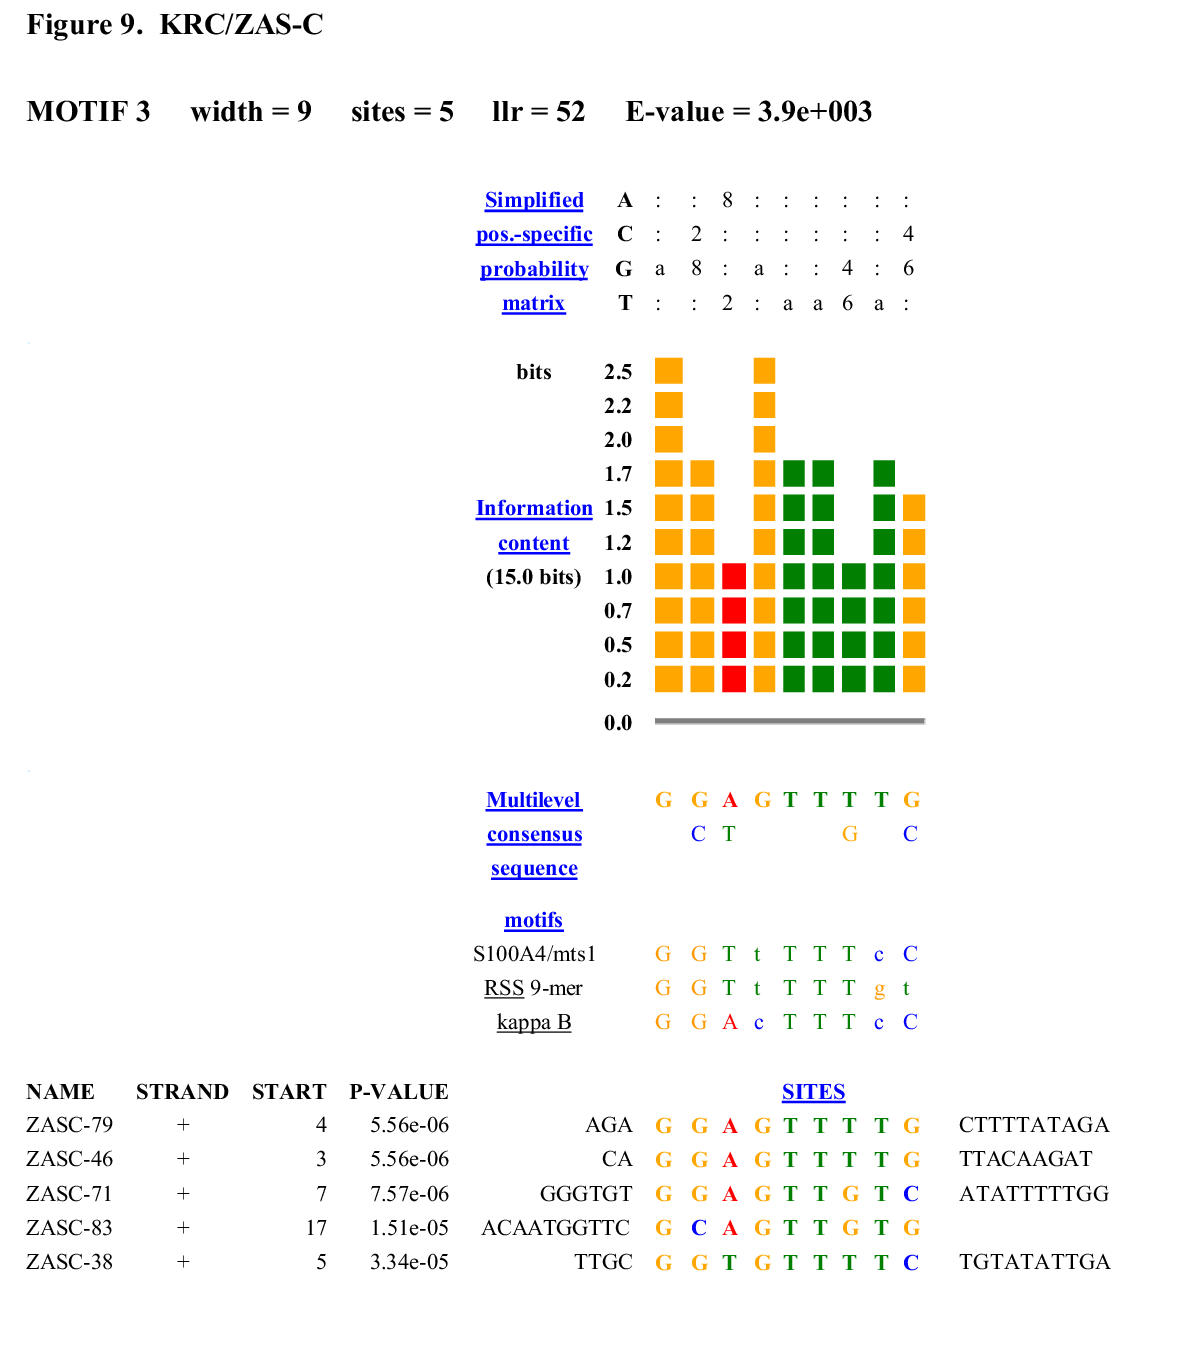 https://static-content.springer.com/image/art%3A10.1186%2F1471-2172-3-10/MediaObjects/12865_2002_Article_22_Fig9_HTML.jpg